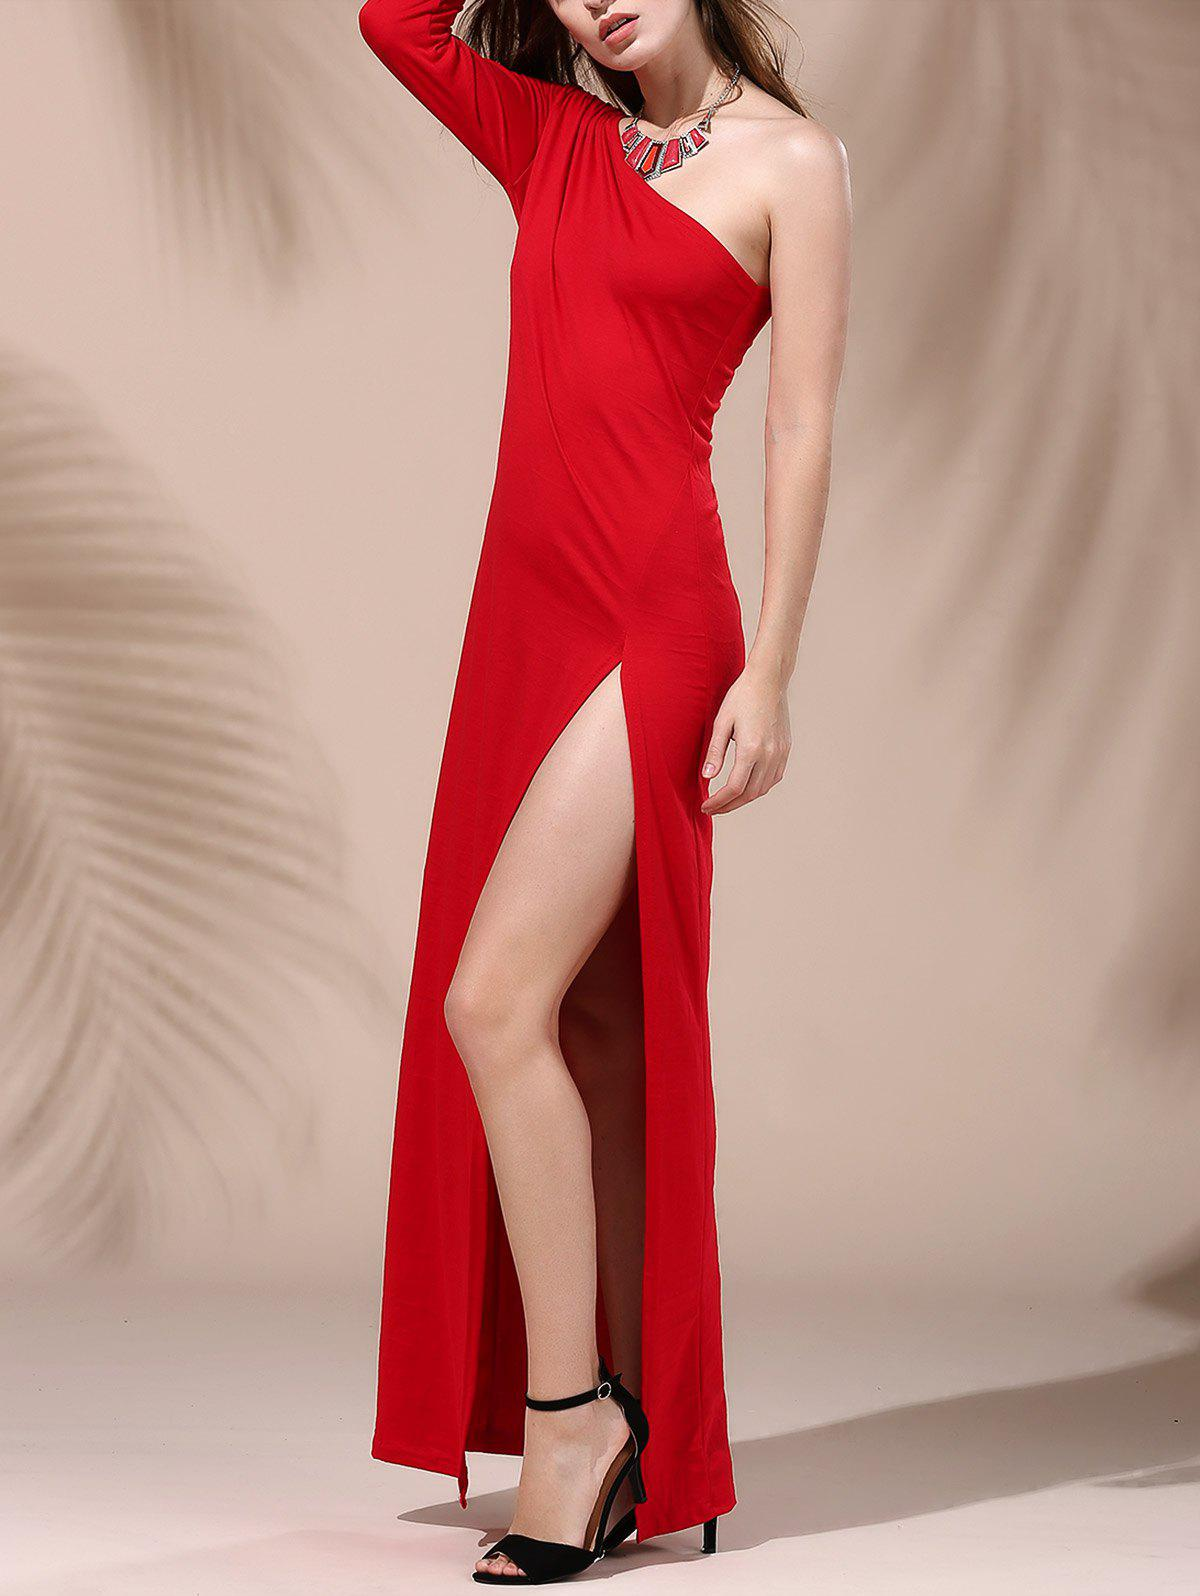 Long Sleeve One Shoulder Furcal Pure Color Dress For Women - RED 3XL